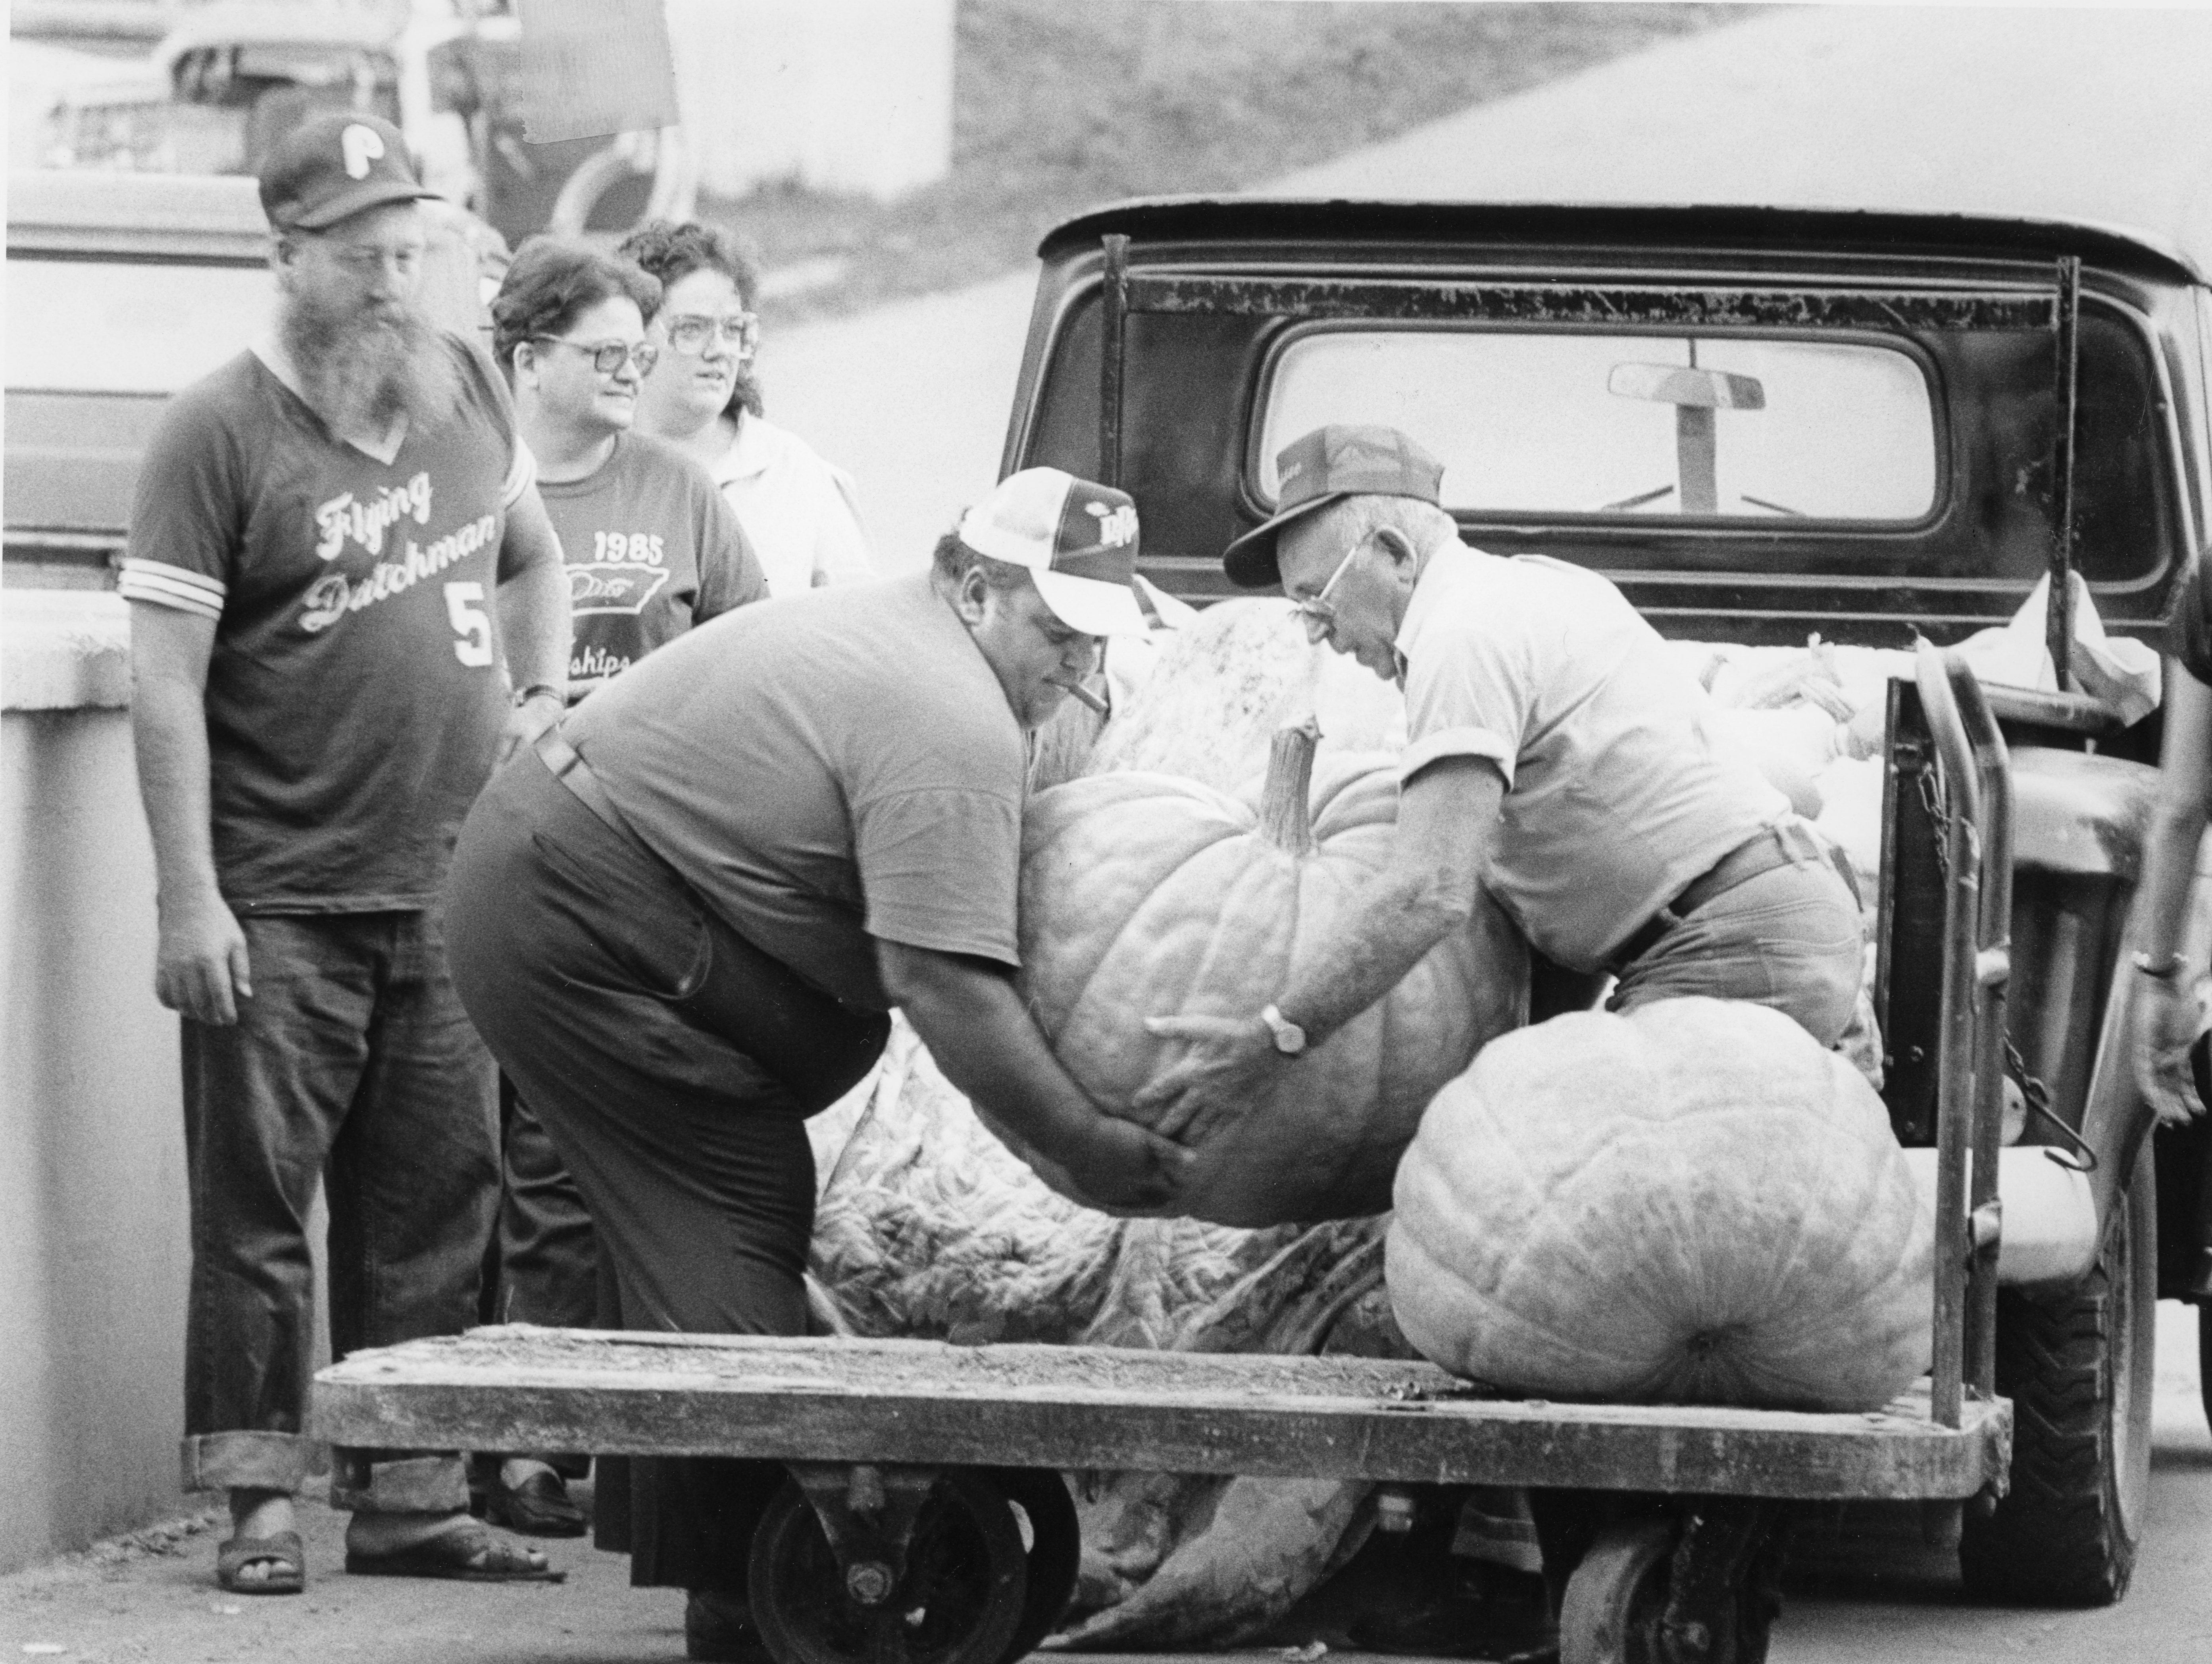 David Roop, left, of Hurst Lane in the Halls area unloads some large pumpkins with the help of B. O. Ogle on September 6, 1985. Roop guessed his large pumpkins would weigh between 180-200 pounds. He has been growing super sized pumpkins in his garden for the last seven years.